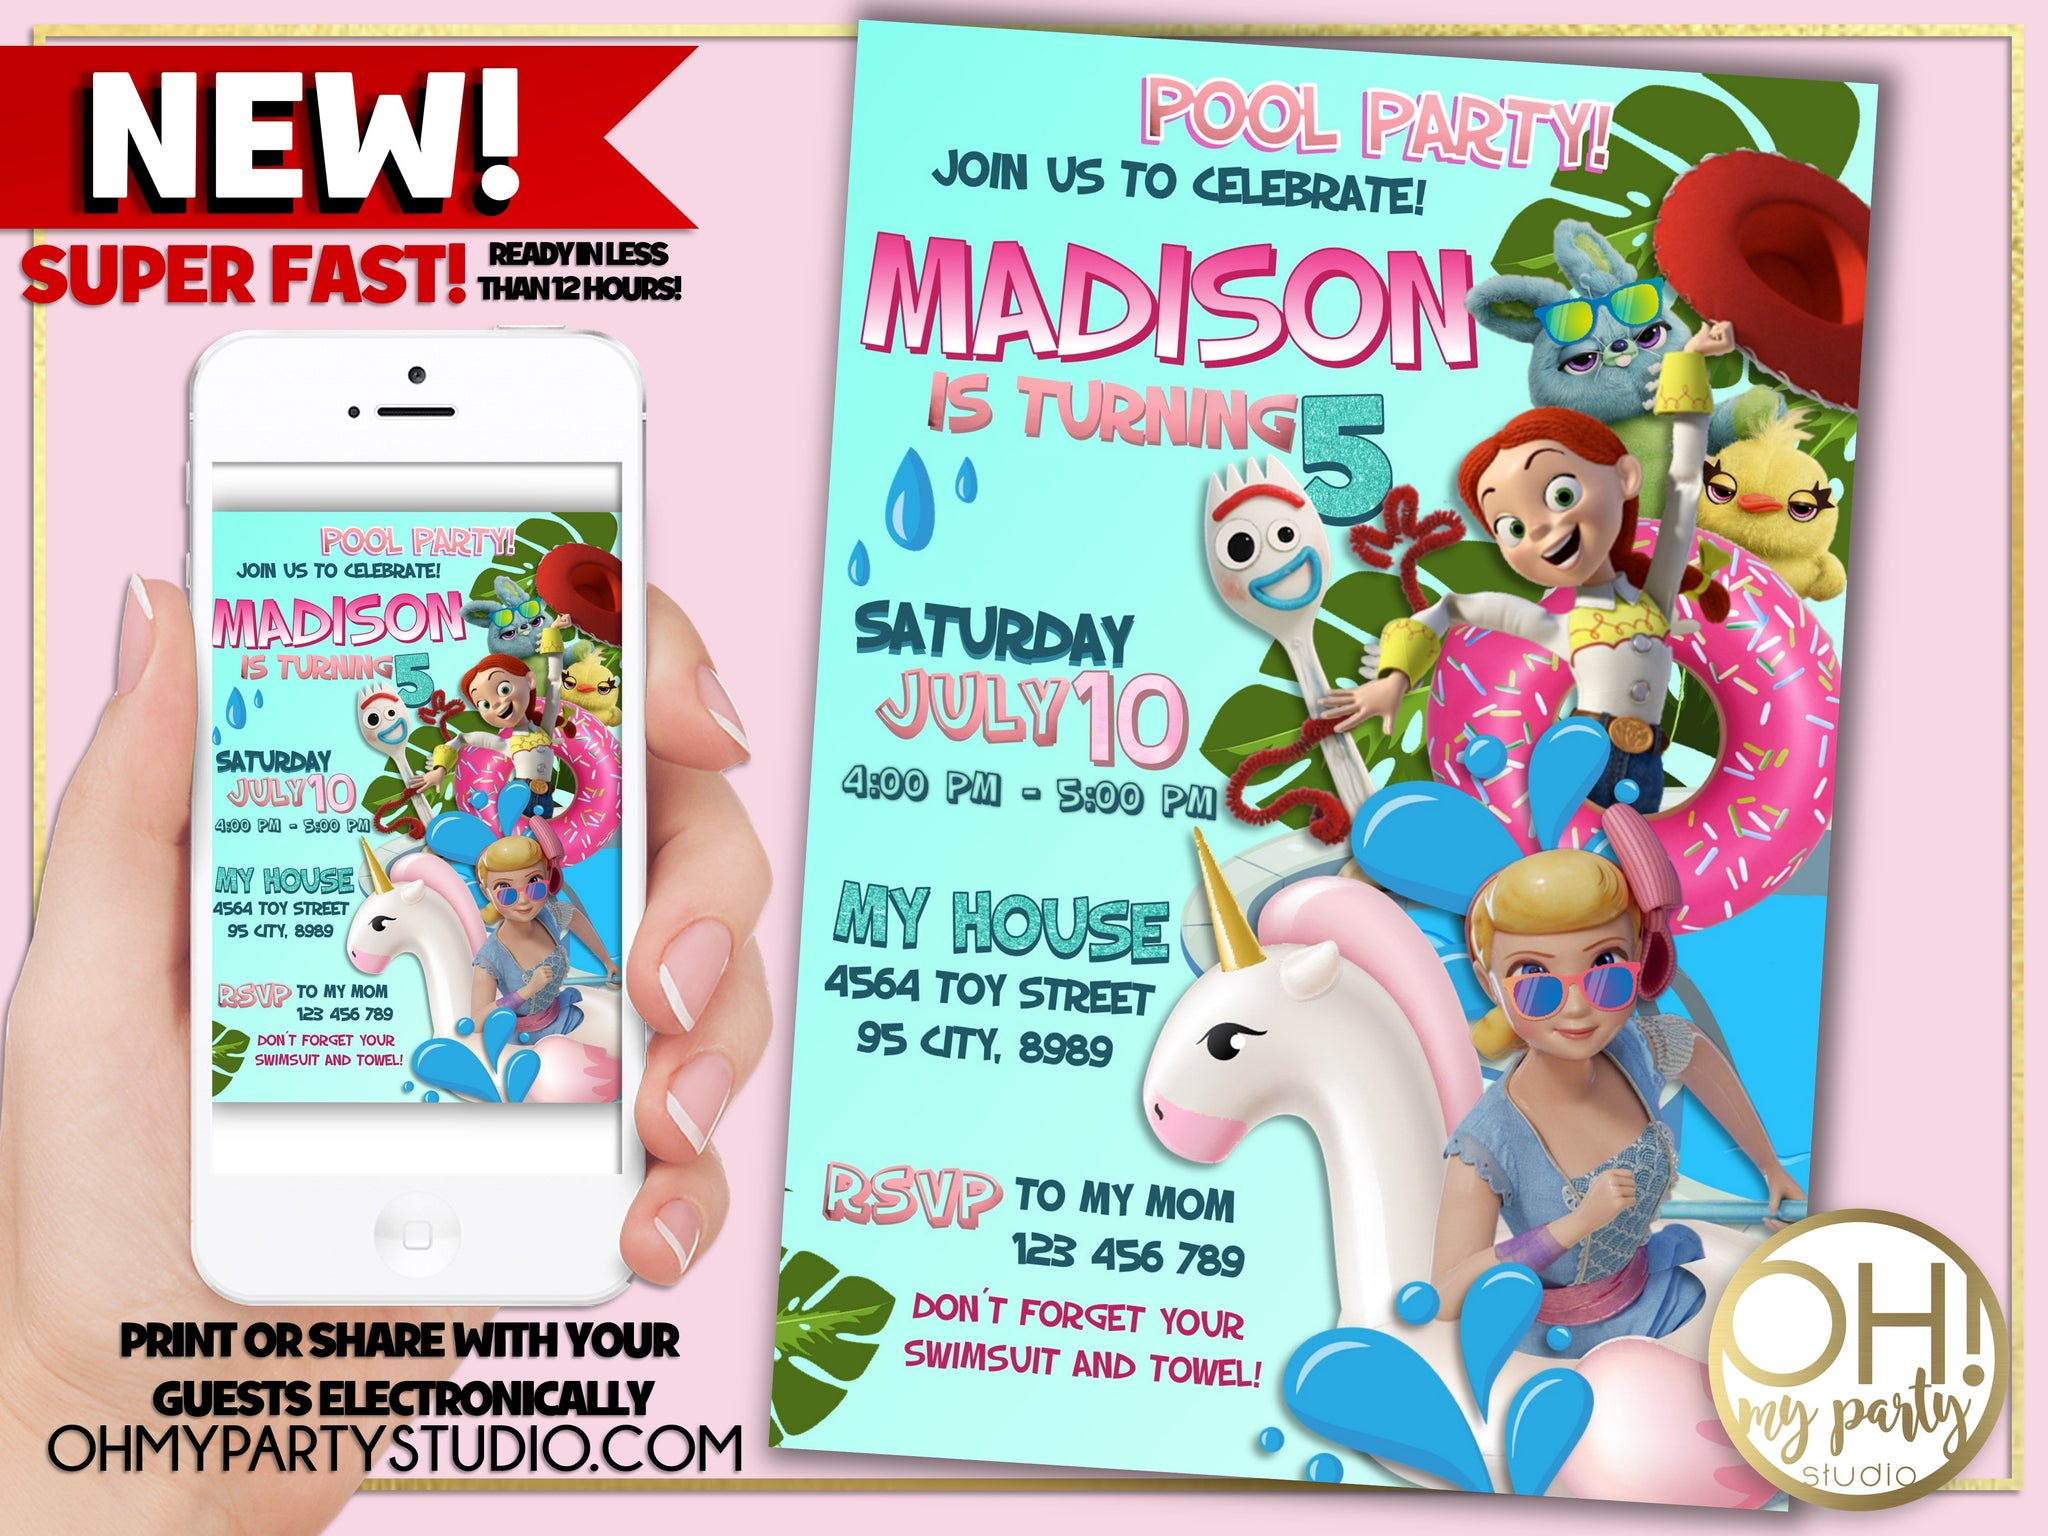 TOY STORY 4 INVITATION FOR GIRL, TOY STORY 5 POOL PARTY INVITATION, TOY STORY 4 BIRTHDAY GIRL,TOY STORY 4 BIRTHDAY INVITATION, TOY STORY BIRTHDAY INVITATION, TOY STORY PARTY, TOY STORY BIRTHDAY, TOY STORY BIRTHDAY PARTY,TOY STORY 4 PARTY IDEAS, TOY STORY 4 BIRTHDAY PARTY, TOY STORY 4 INVITE, TOY STORY 4 INVITATIONS, TOY STORY 4 BIRTHDAY PARTY INVITATIONS